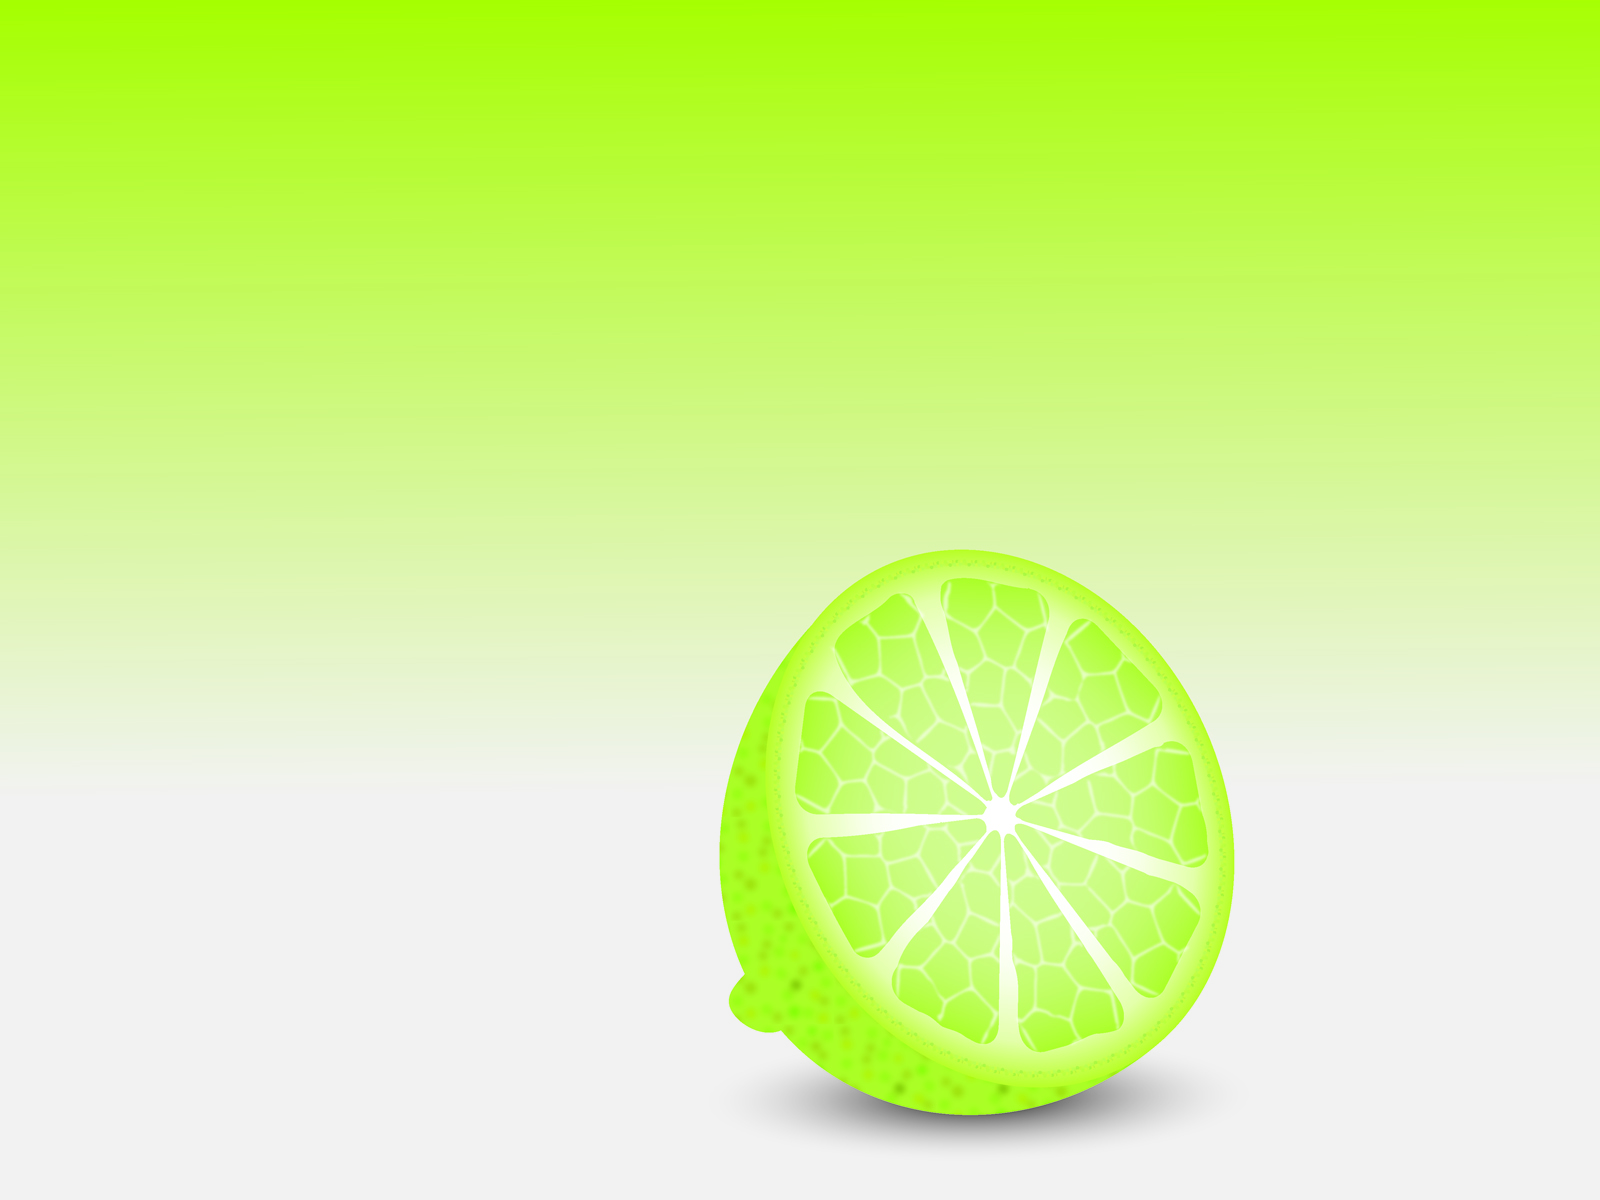 Green Lemon powerpoint backgrounds